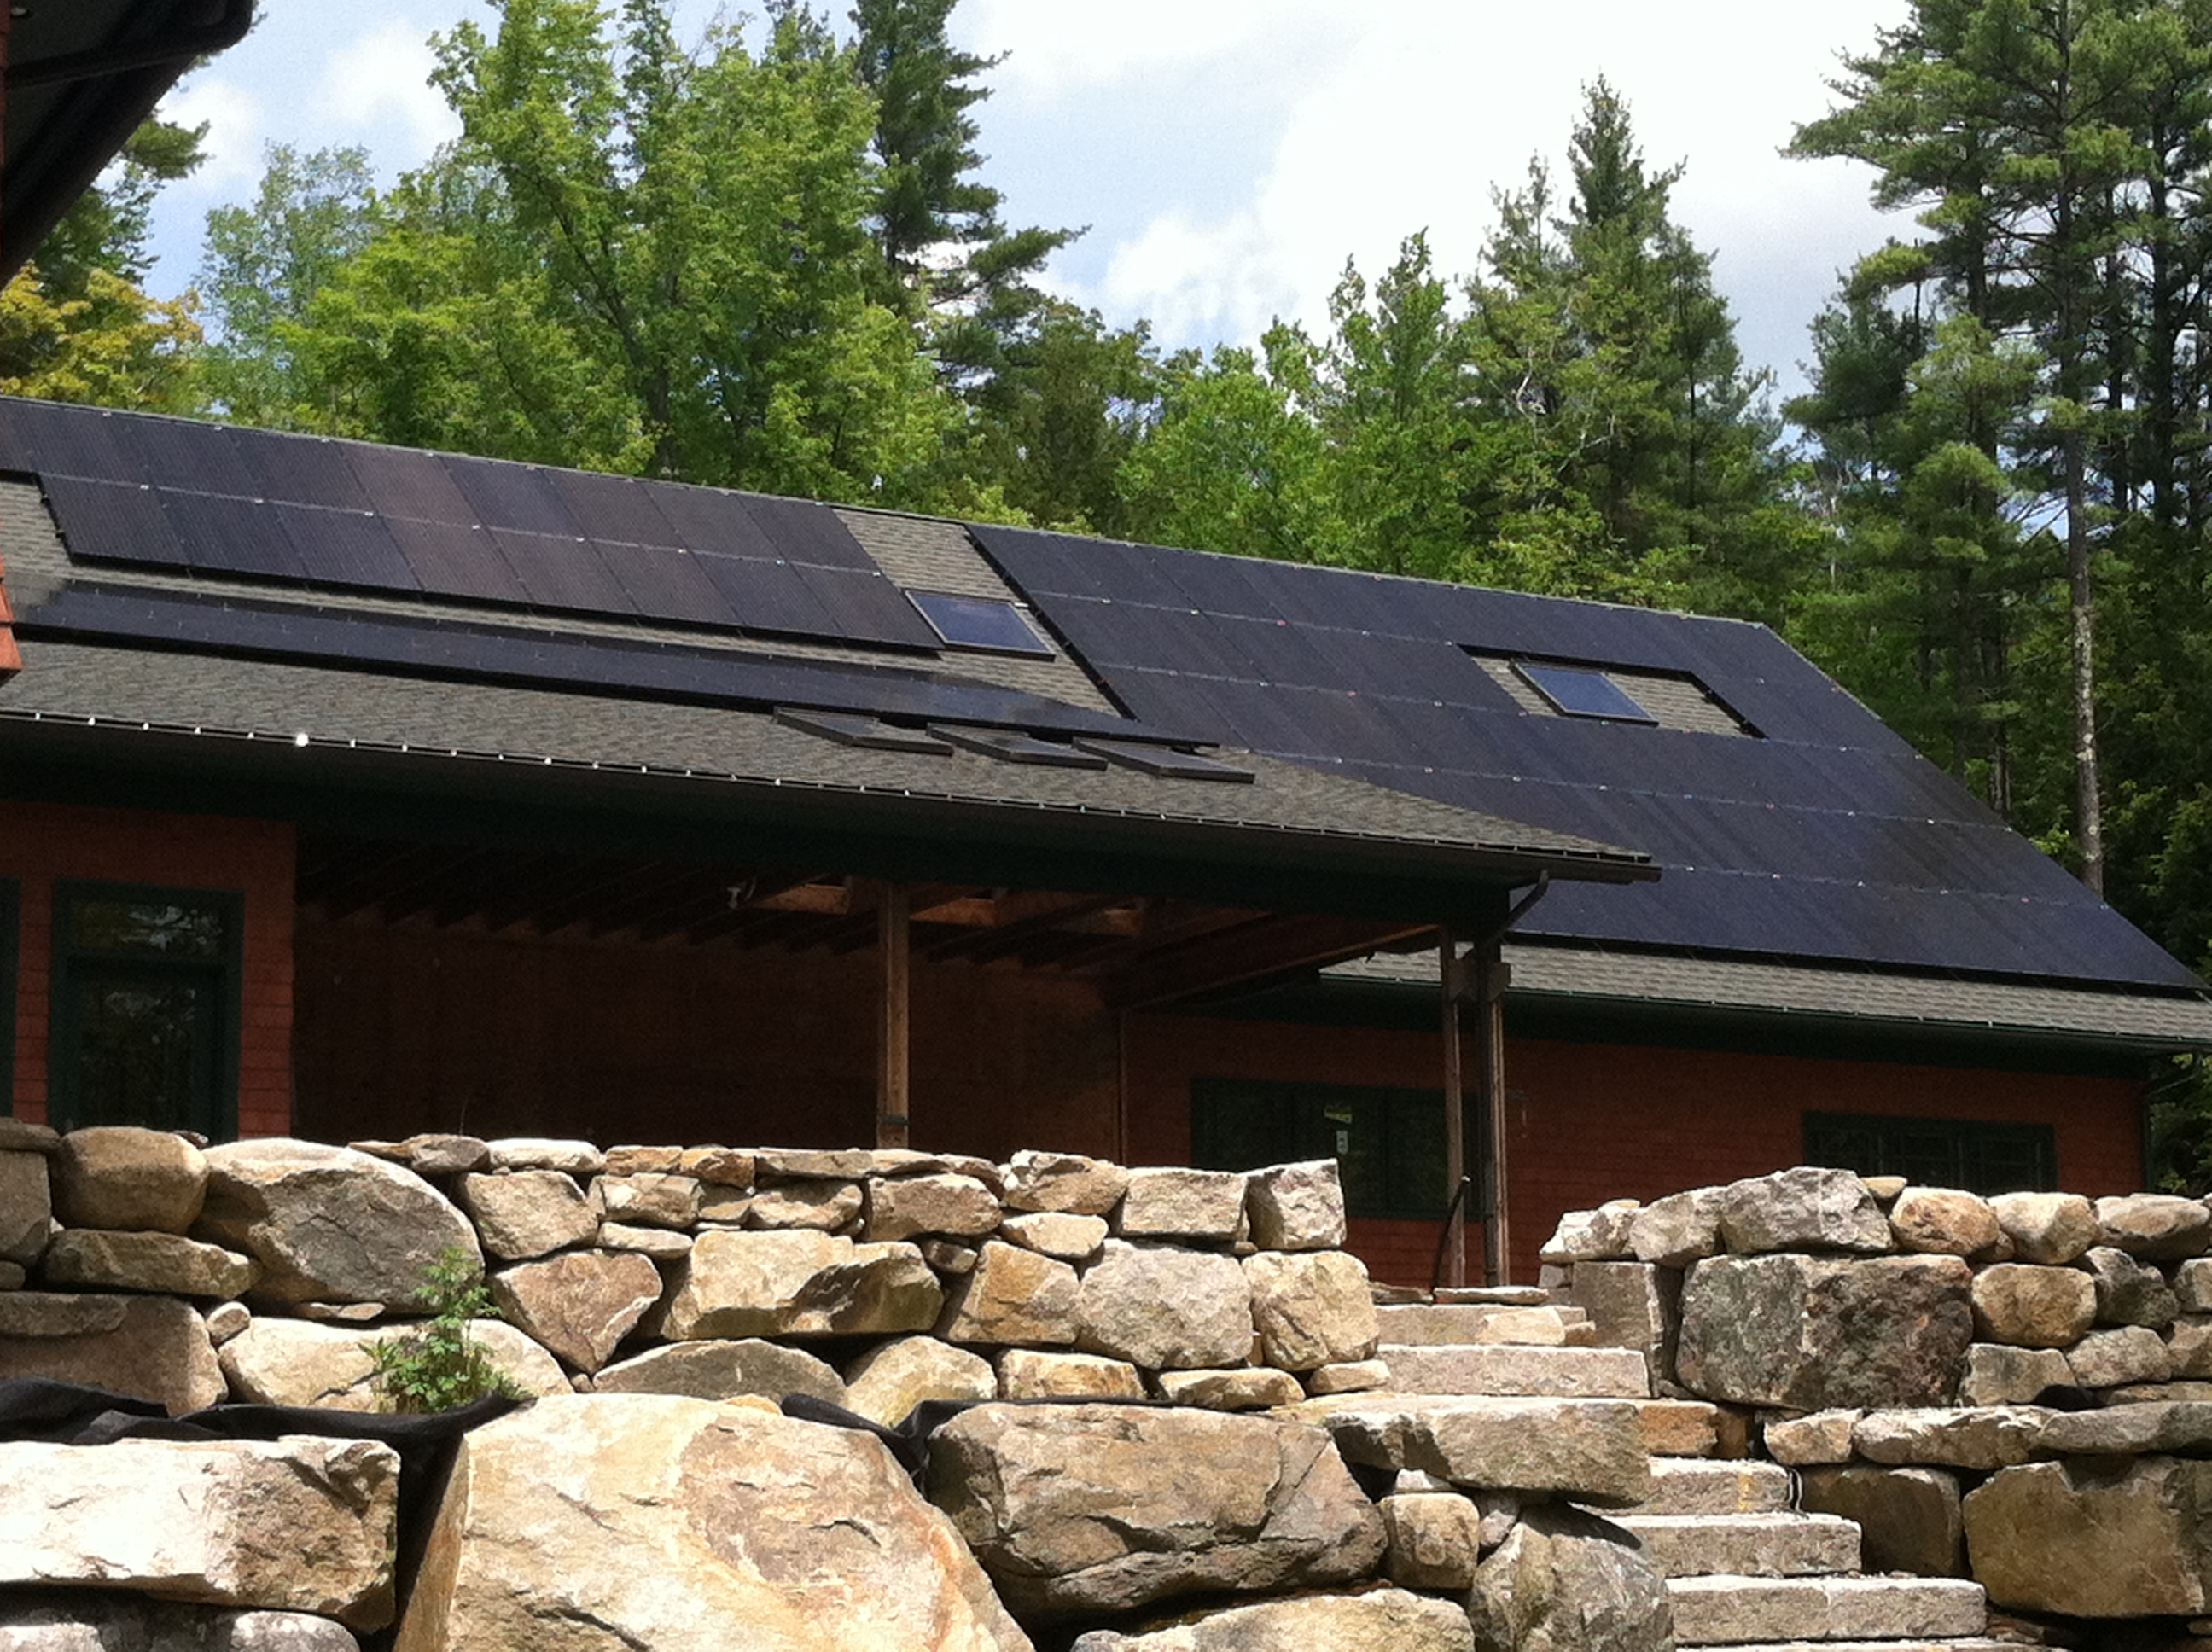 Solar Panels on the roof of a ranch style home in the daytime